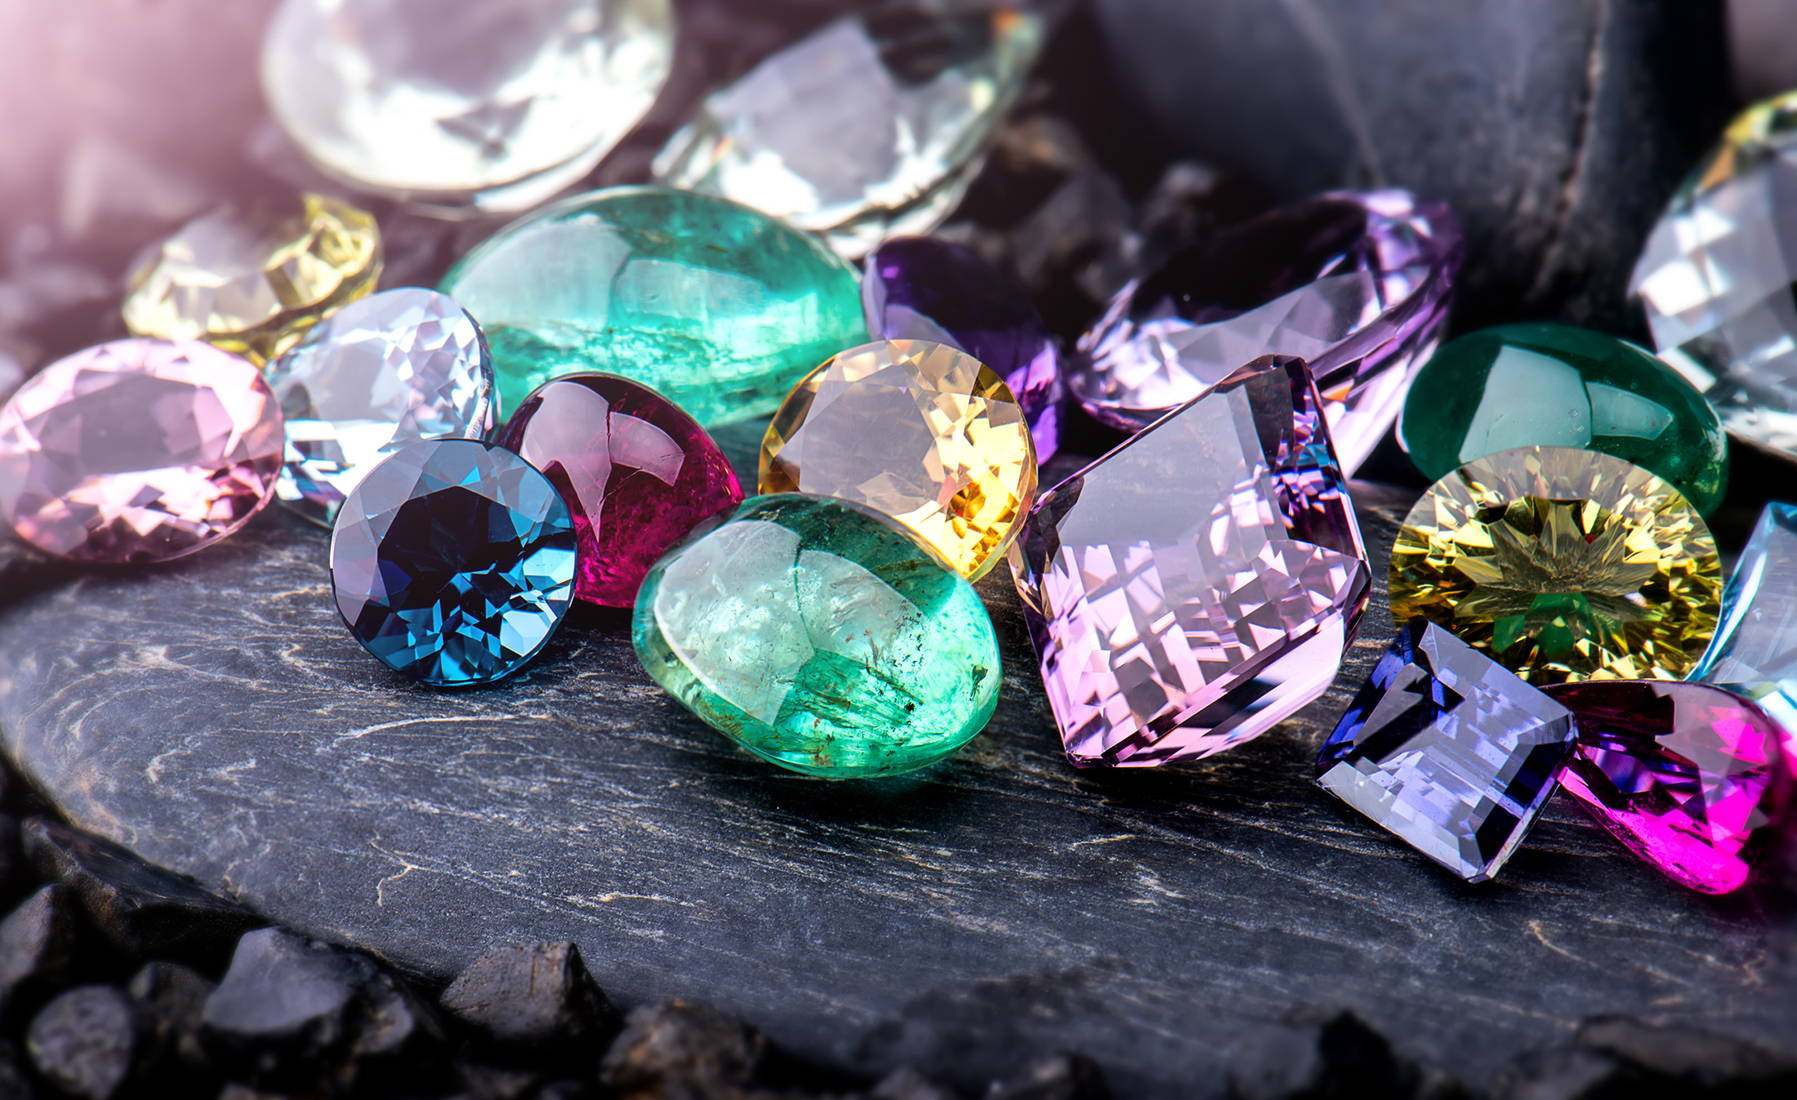 The Complete Buyers Guide To Birthstone Jewelry & Birthstone Gifts